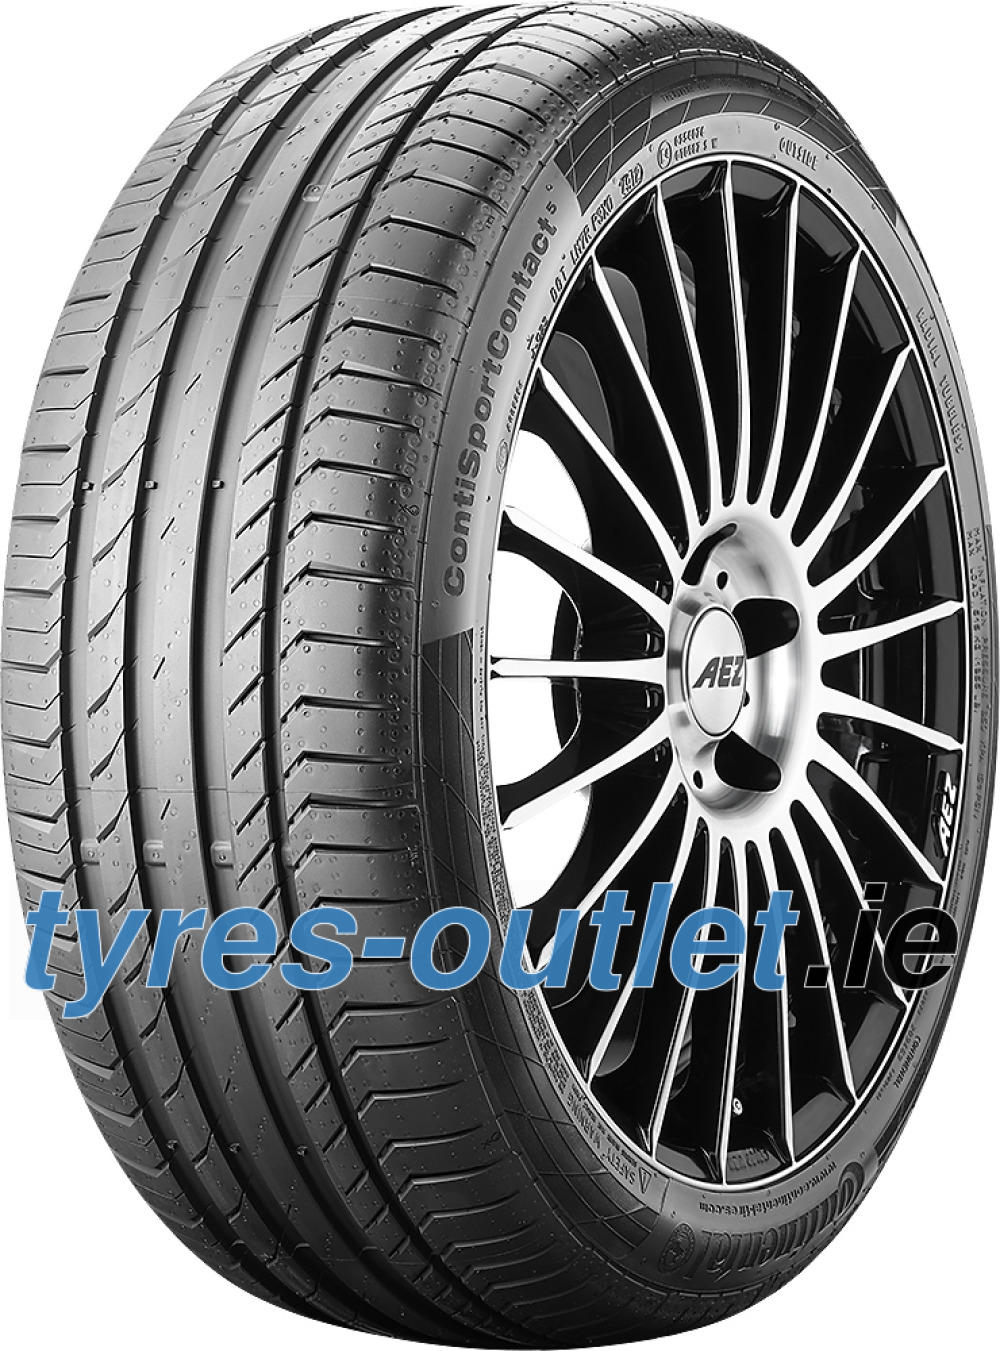 Continental ContiSportContact 5 ( 245/50 ZR18 (100Y) N0, with kerbing rib )